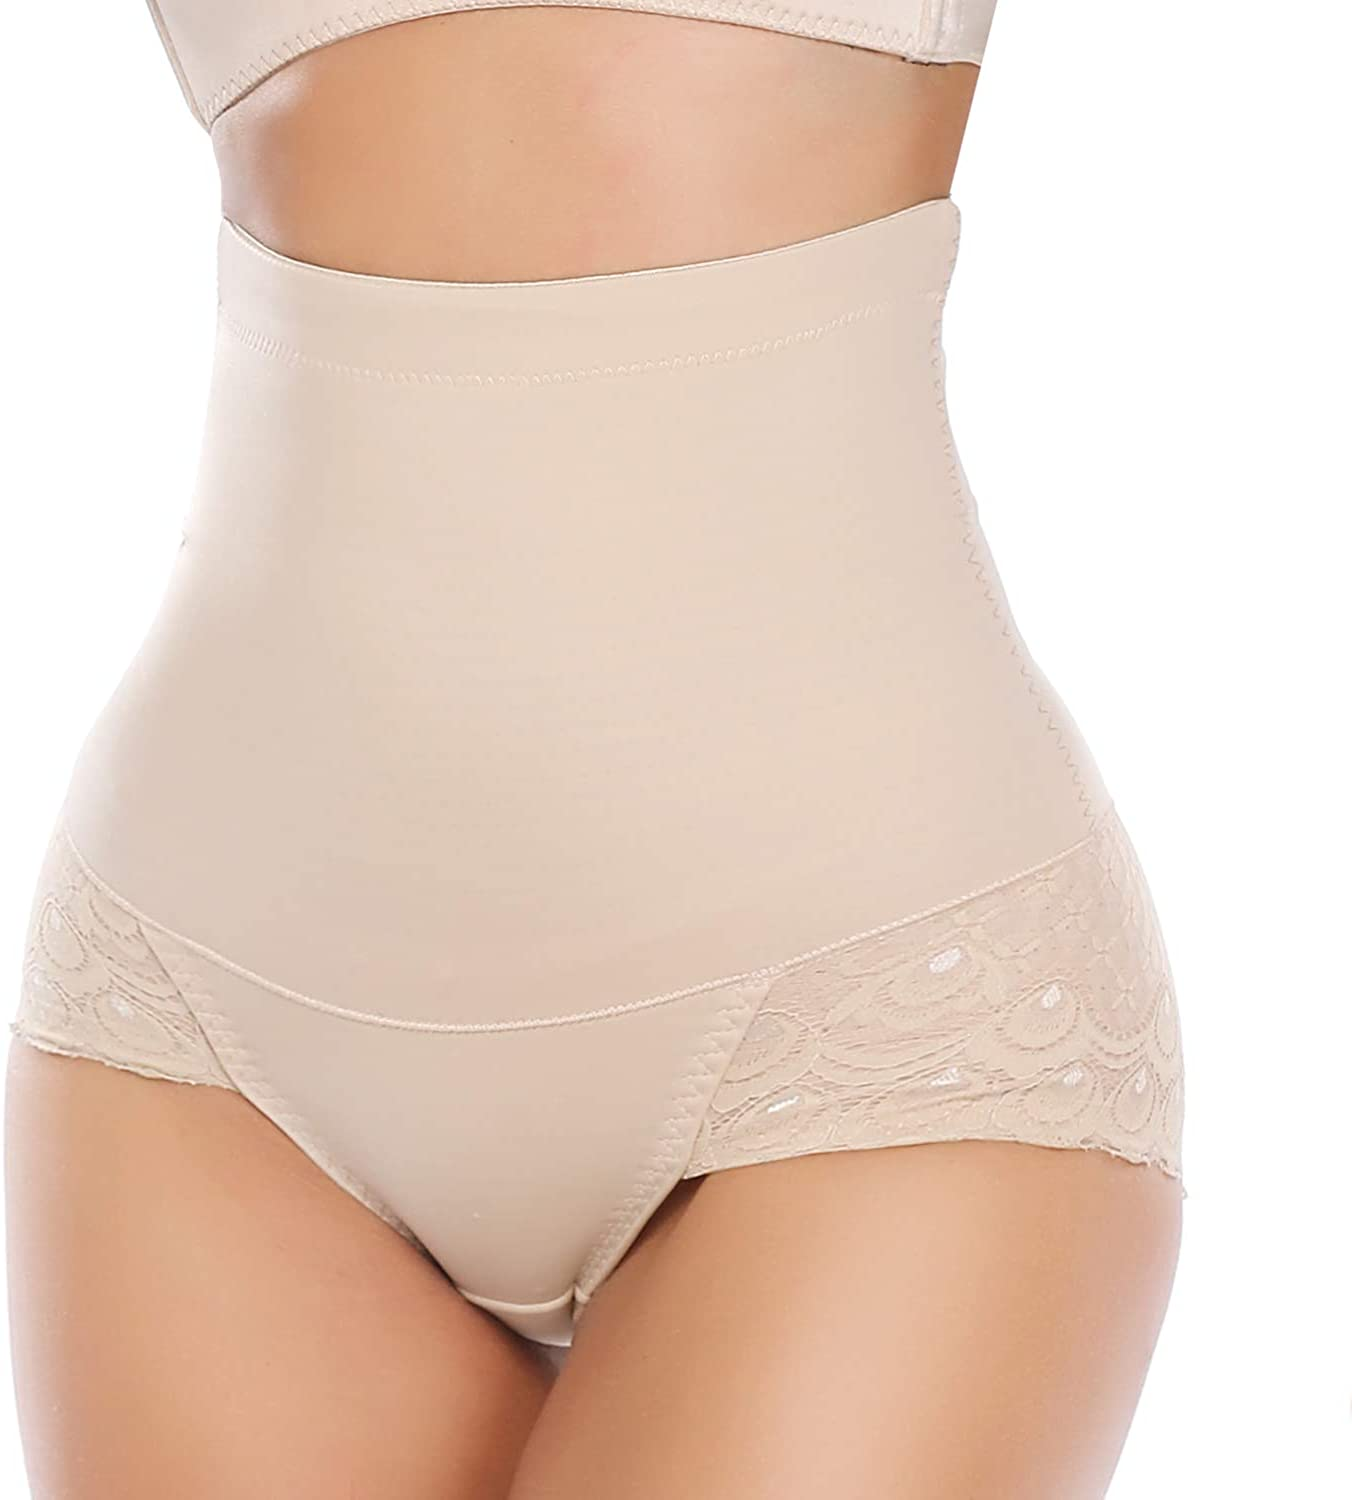 High Wasted Control Pants Slimming Panties  Control Pants Body Shaper